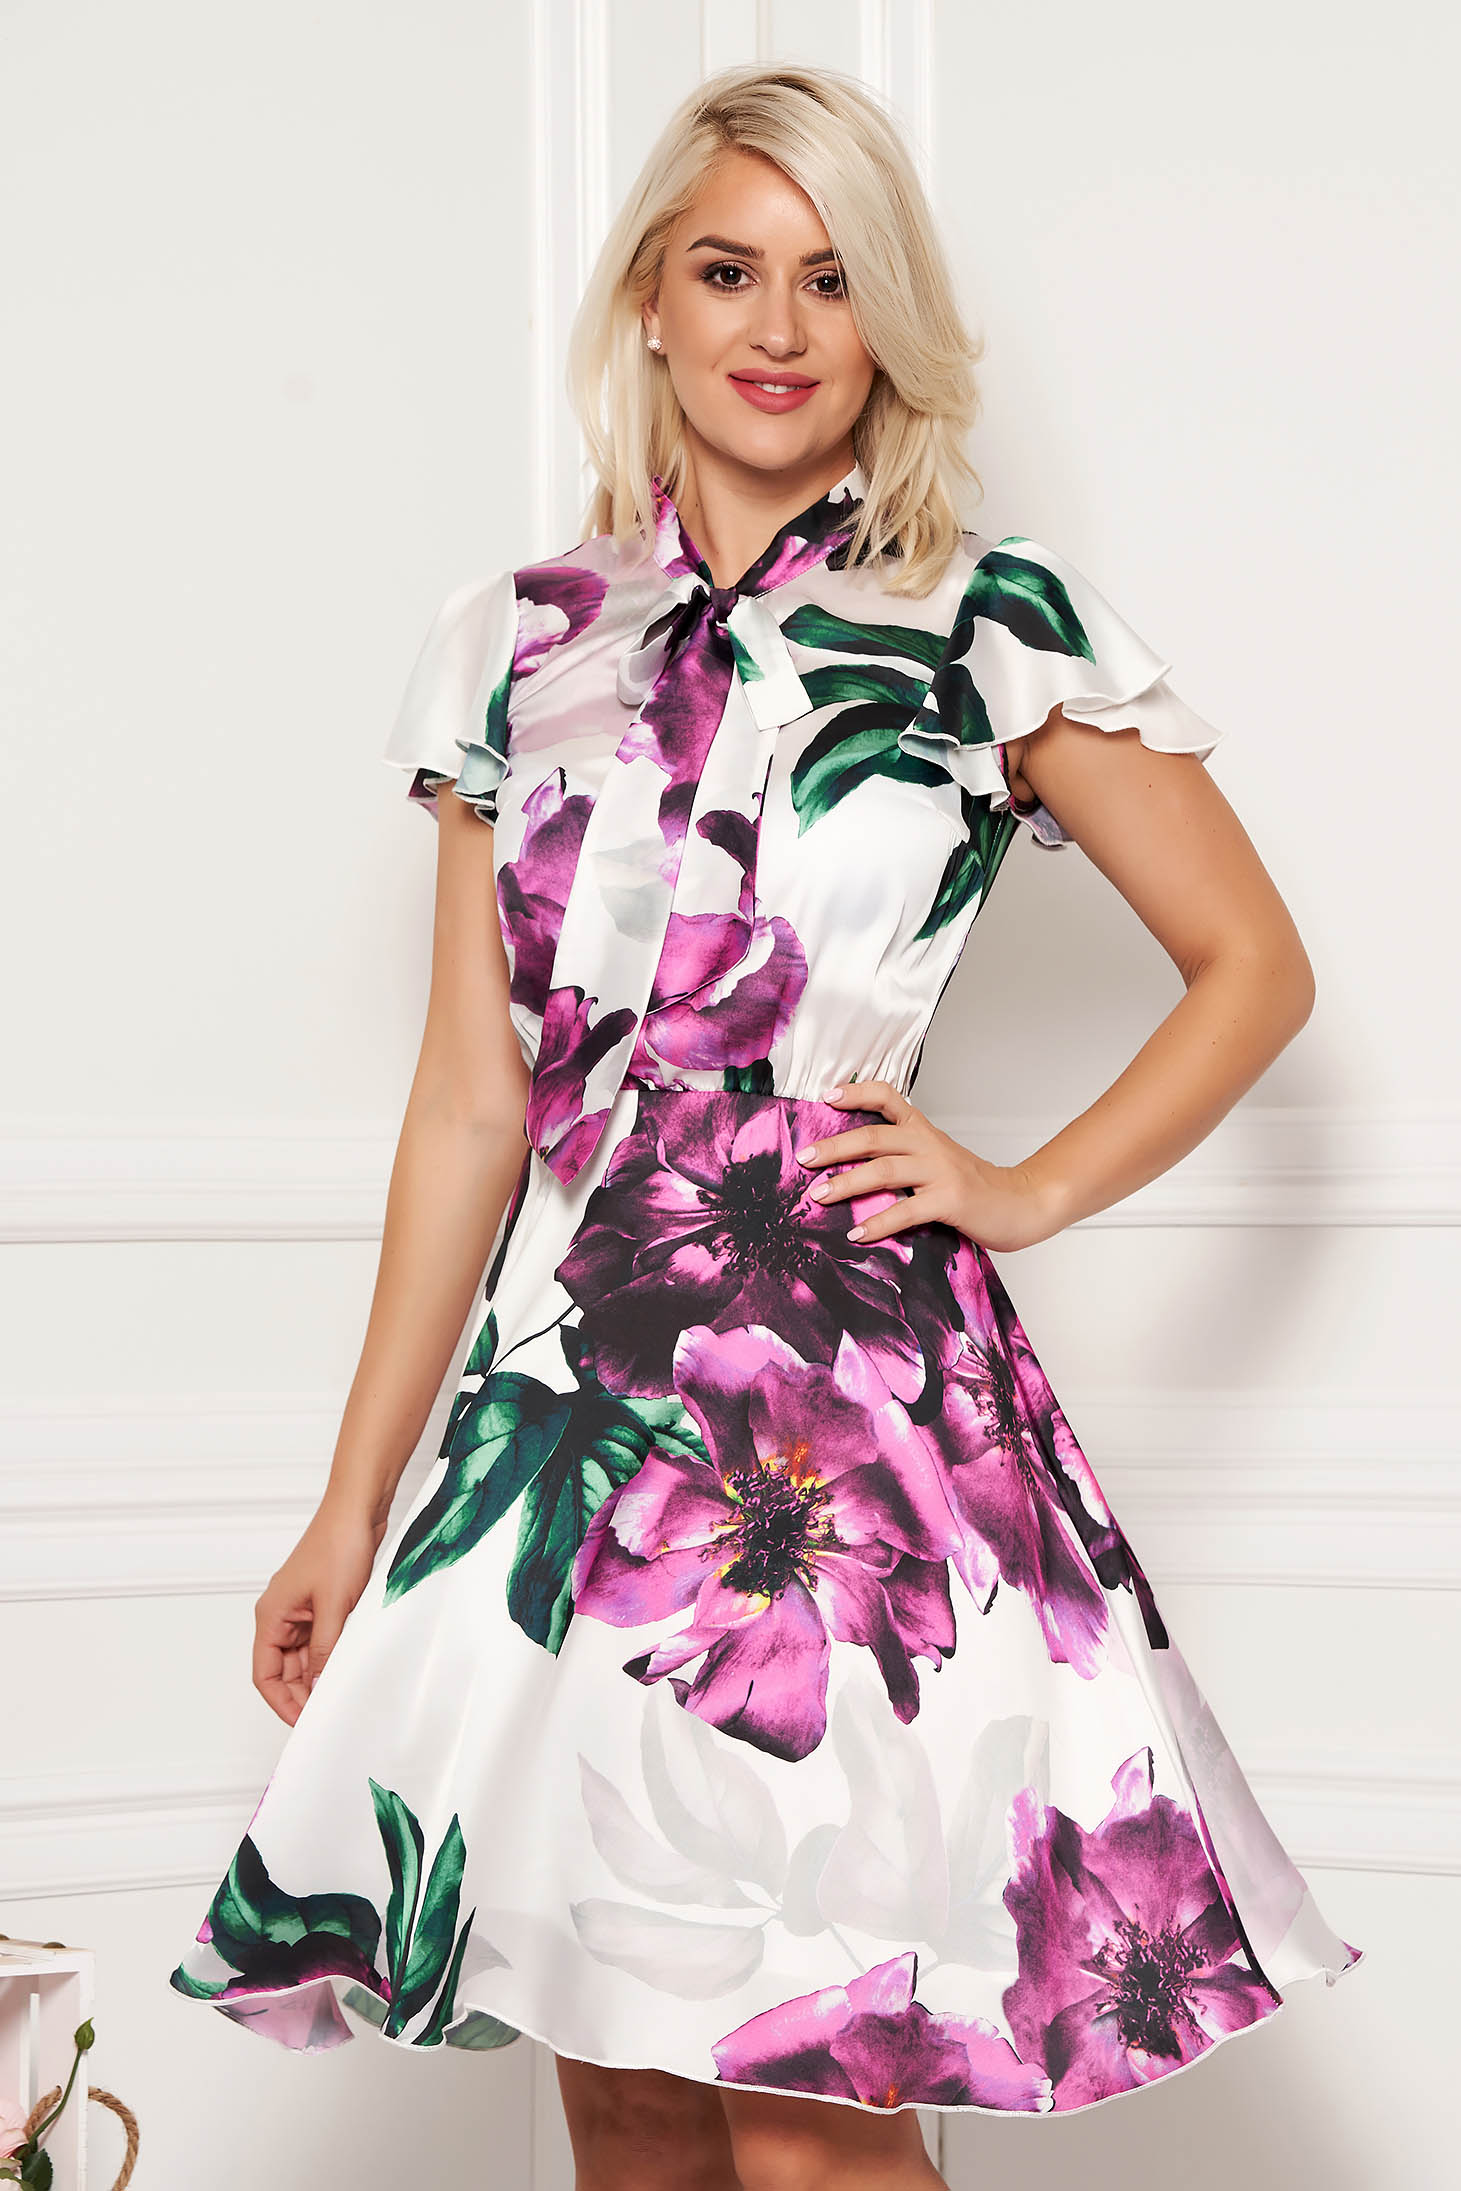 Daily cloche purple dress from veil fabric with turtle neck with butterfly sleeves with floral print